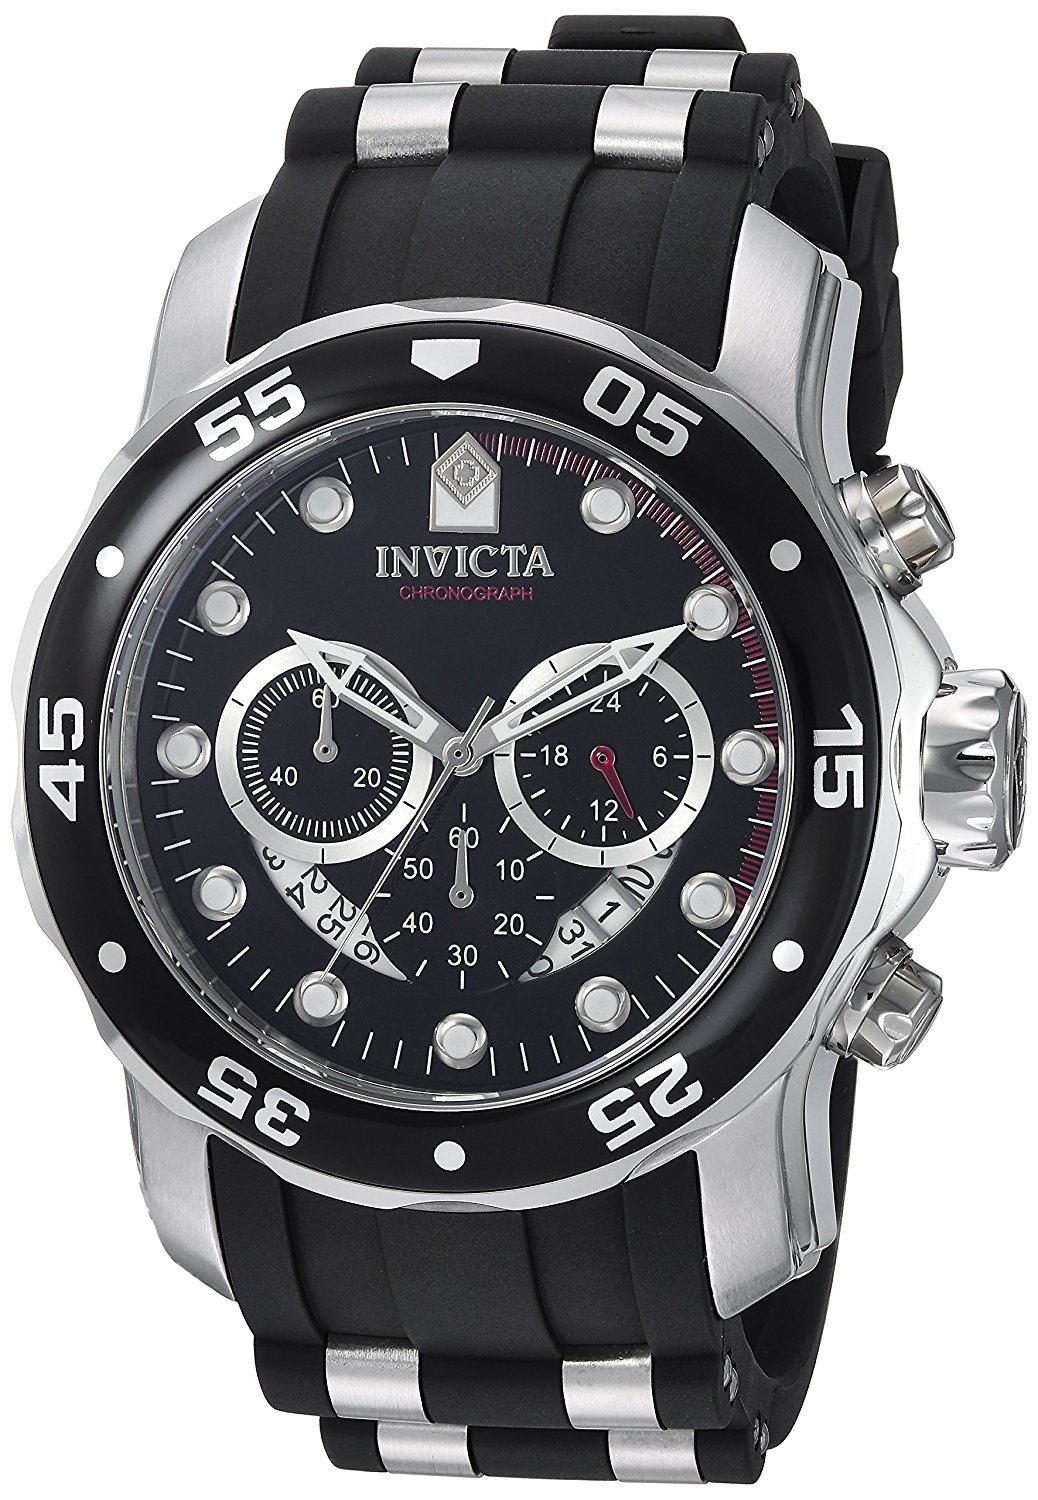 Invicta Diver Collection Chronograph  Polyurethane  Mens Watch 6977.GIFT